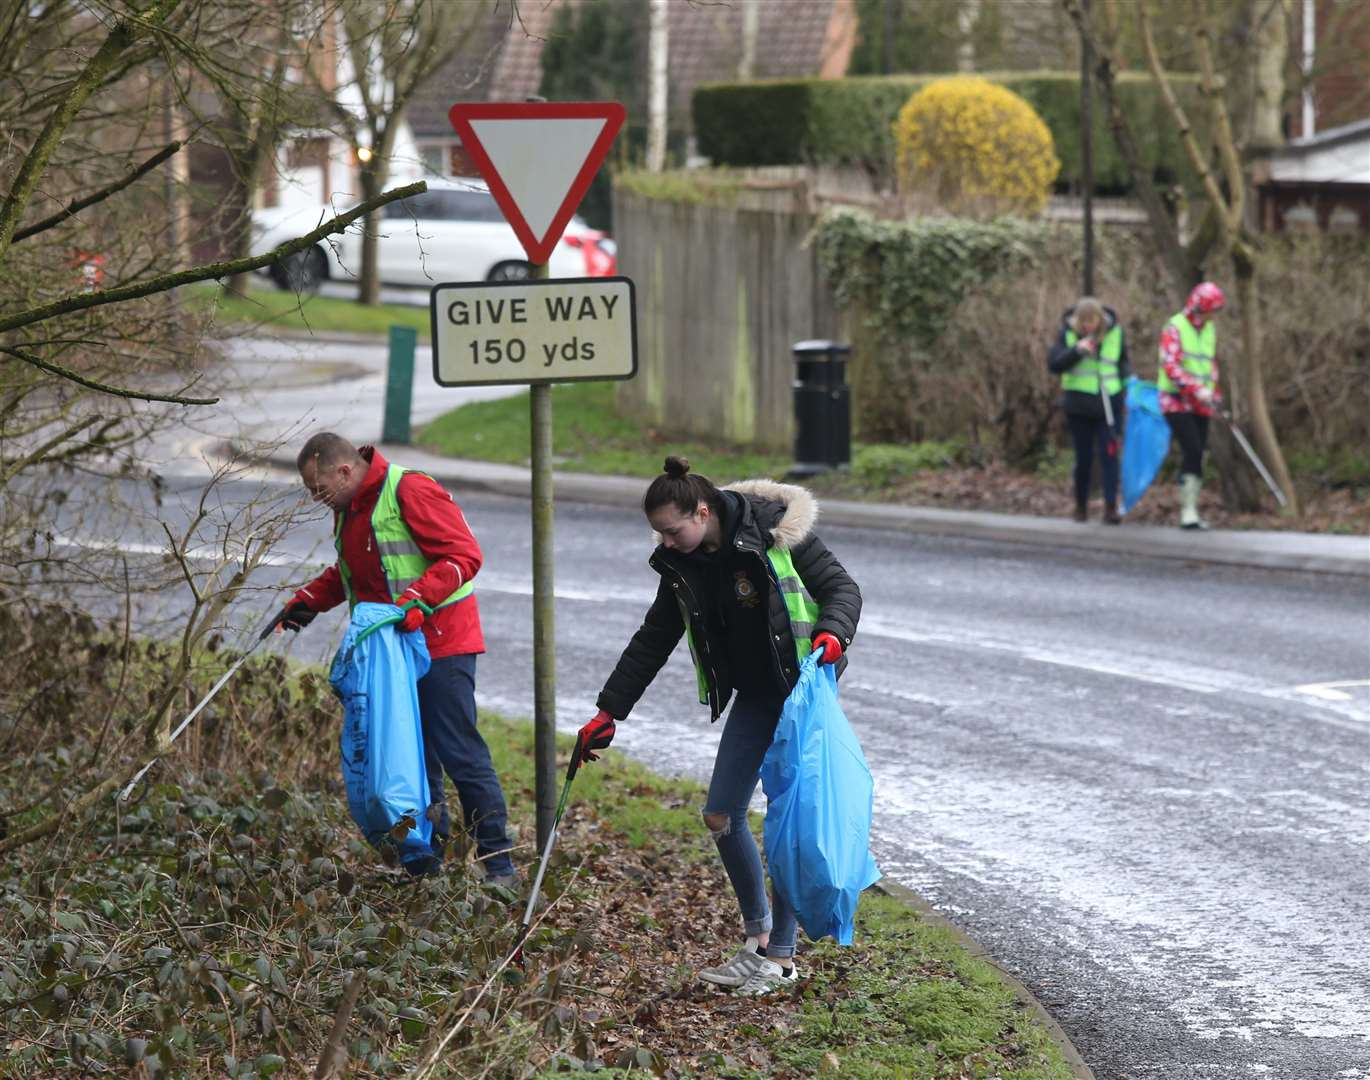 Volunteers pick up litter along a road in Walderslade during last year's campaign